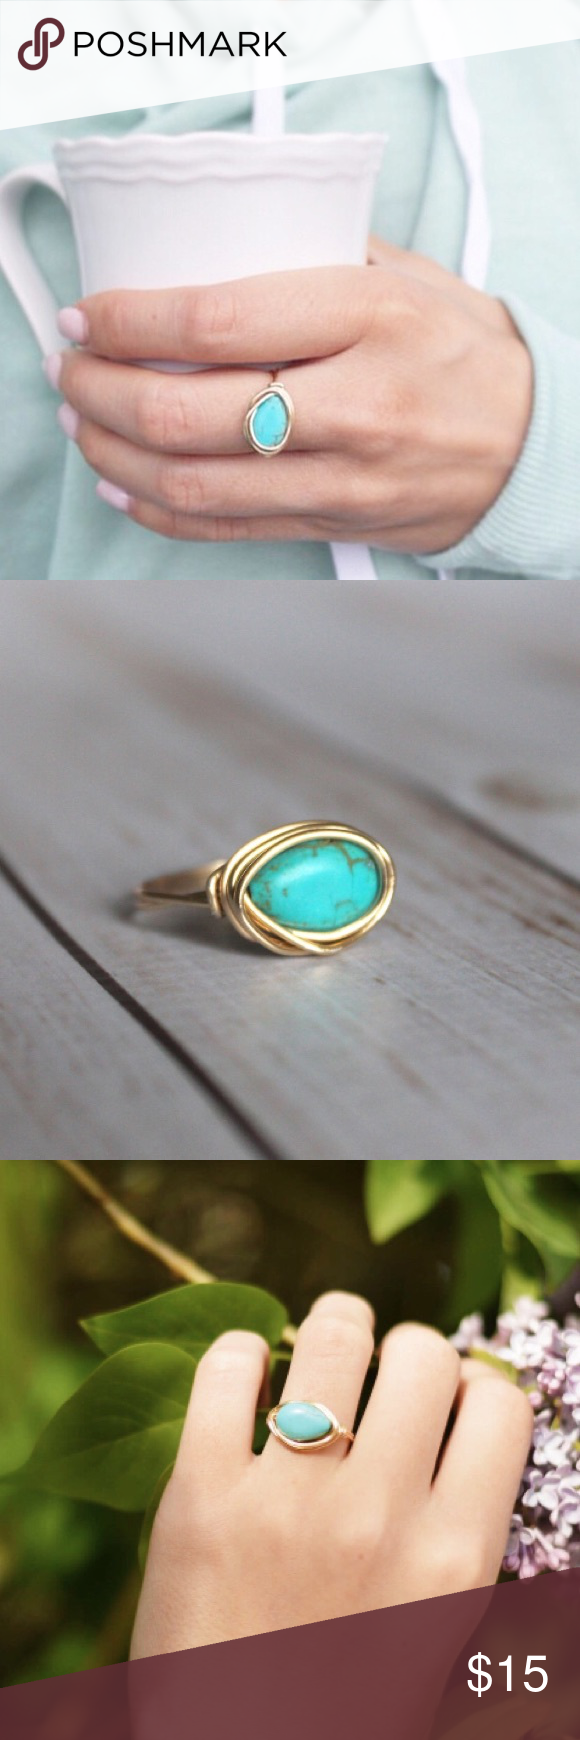 Turquoise Magnesite Wire Wrapped Ring A turquoise colored magnesite ...